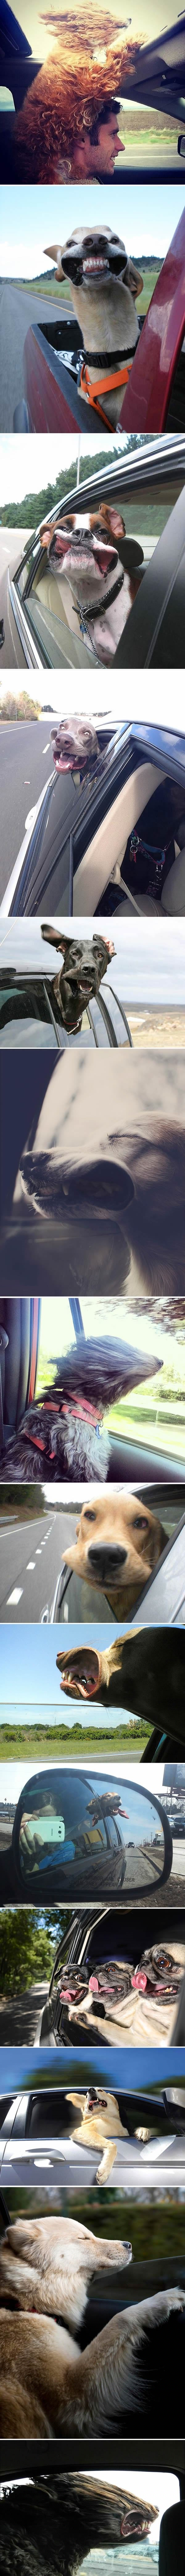 dogs-rides-compilation-wind